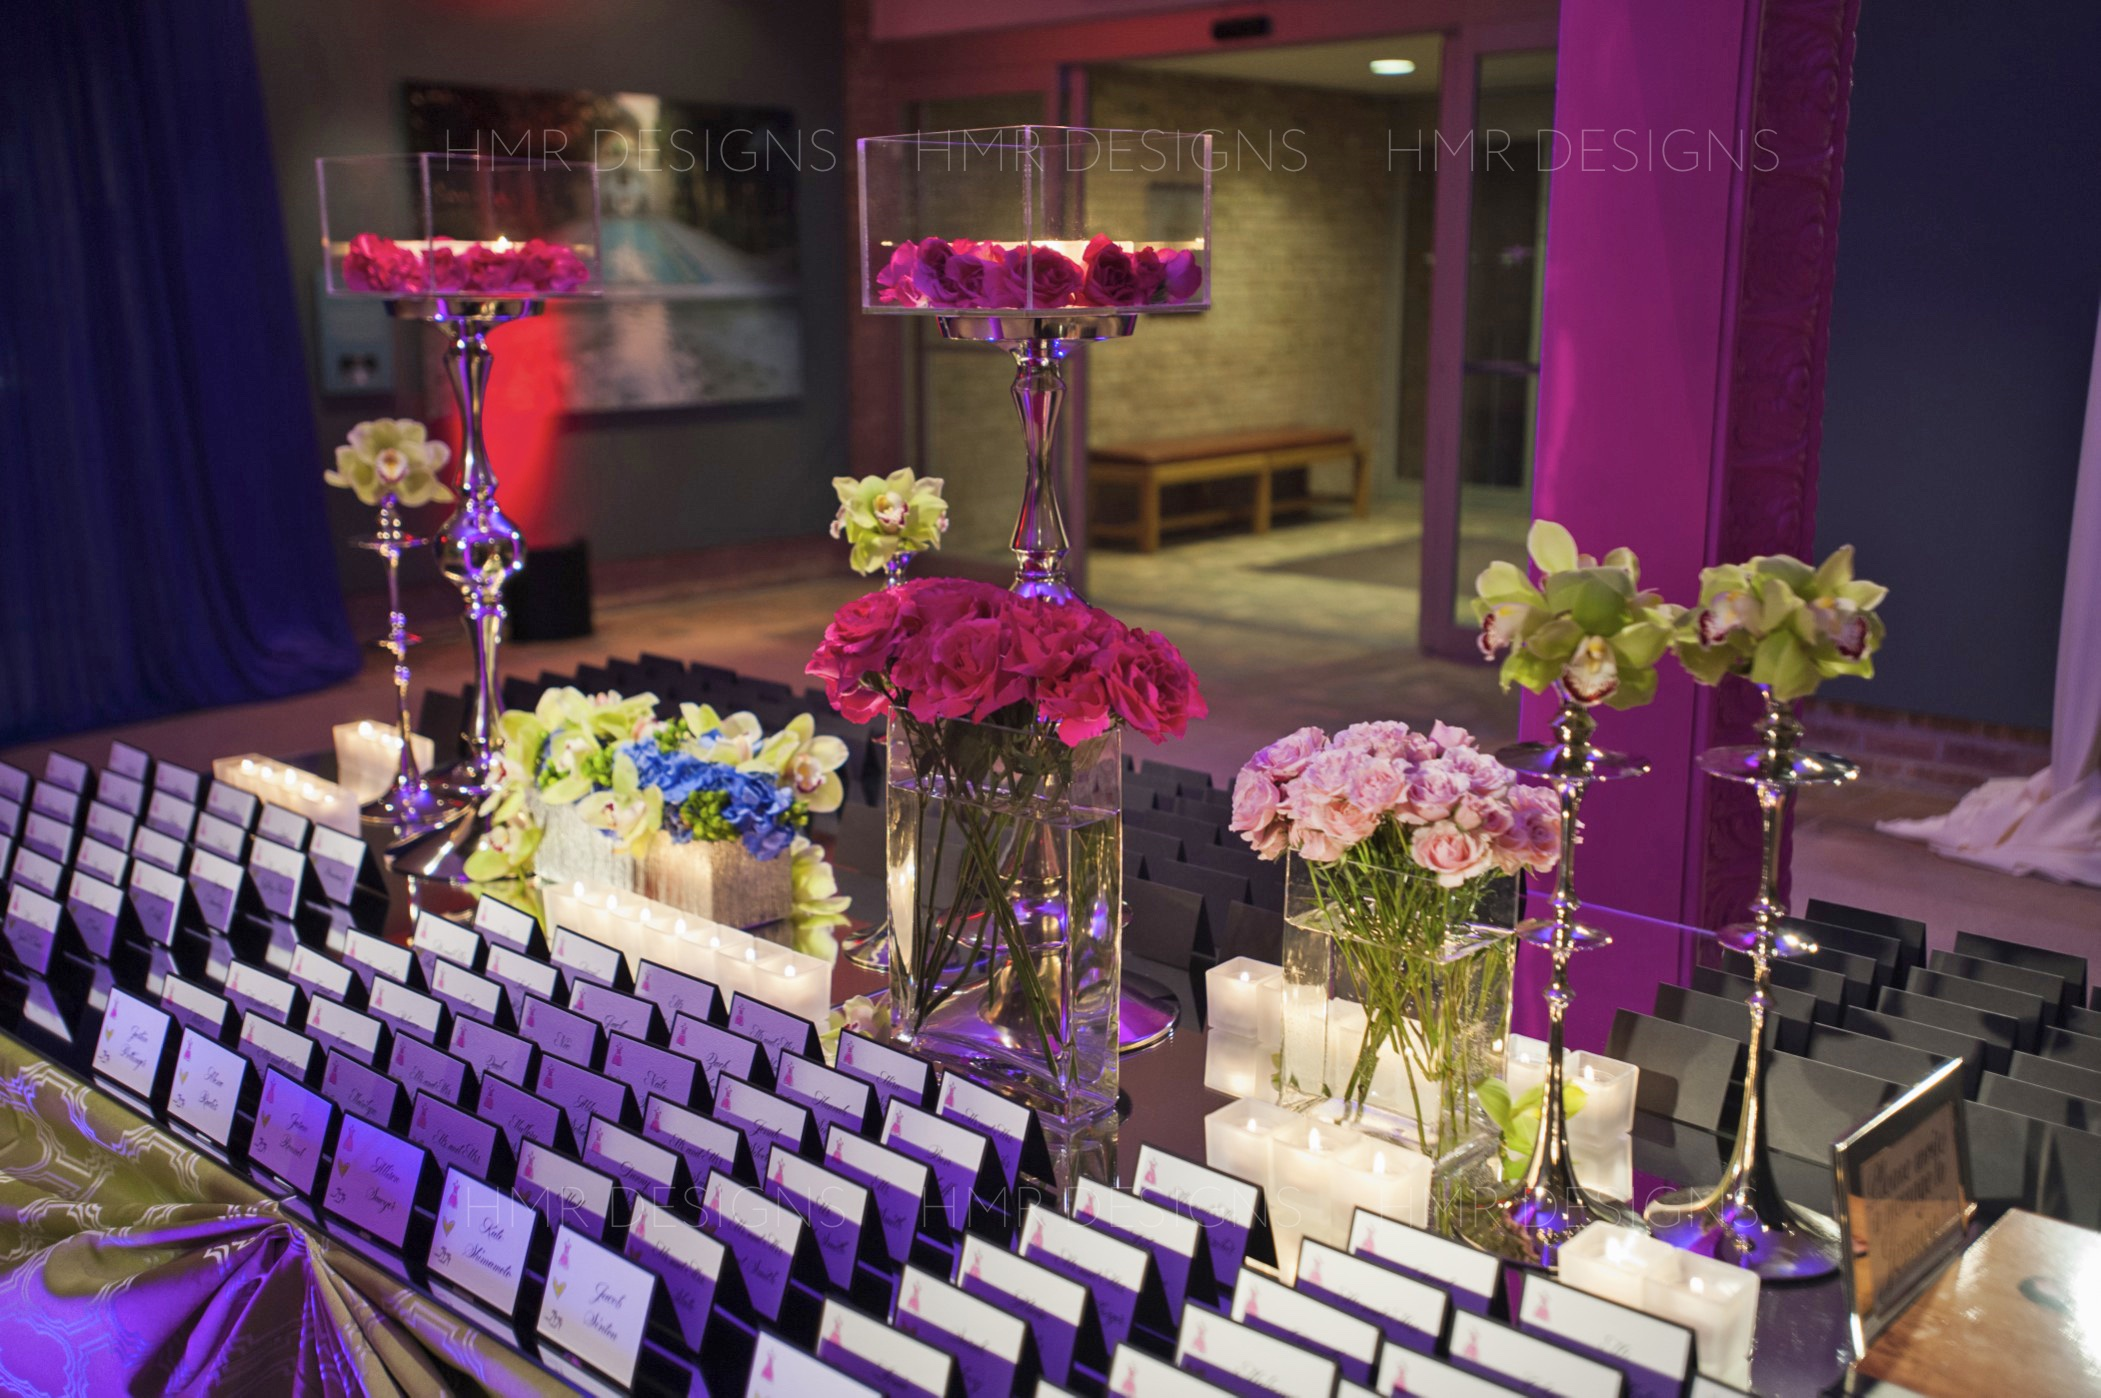 Sleek candlelight and lush bunches of pink floral adorn a placecard table at a custom Bat Mitzvah at Chicago Botanic Garden designed by HMR Designs